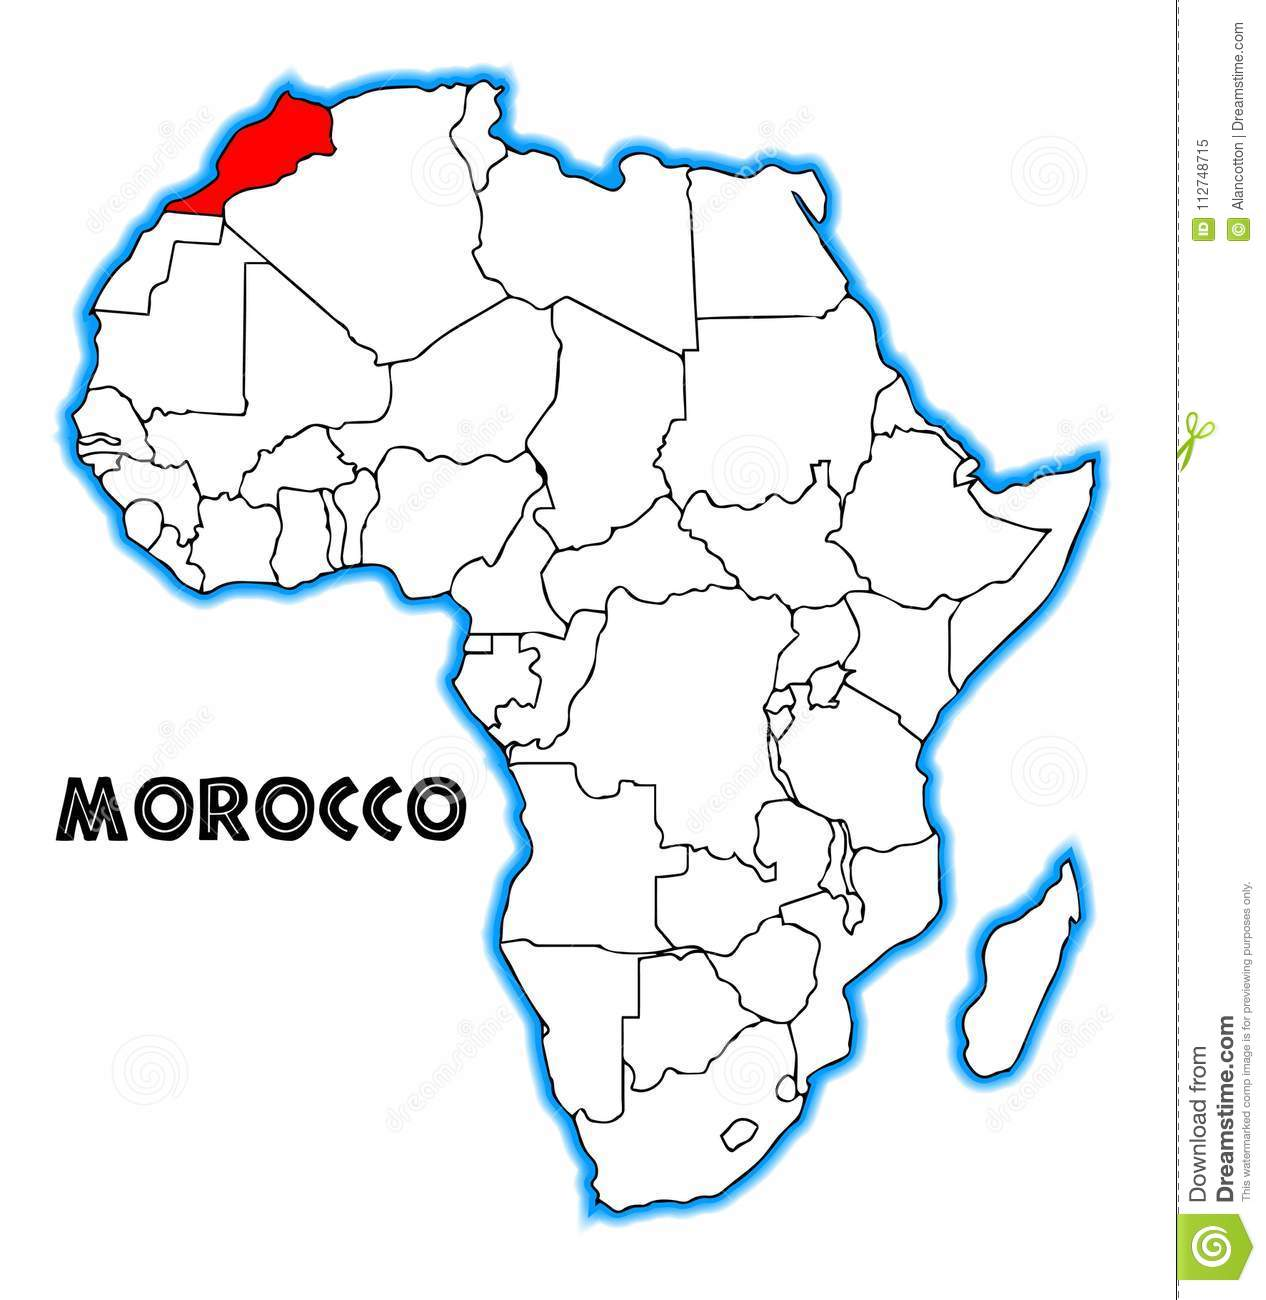 Morocco Map Africa Morocco Africa Map stock vector. Illustration of outline   112748715